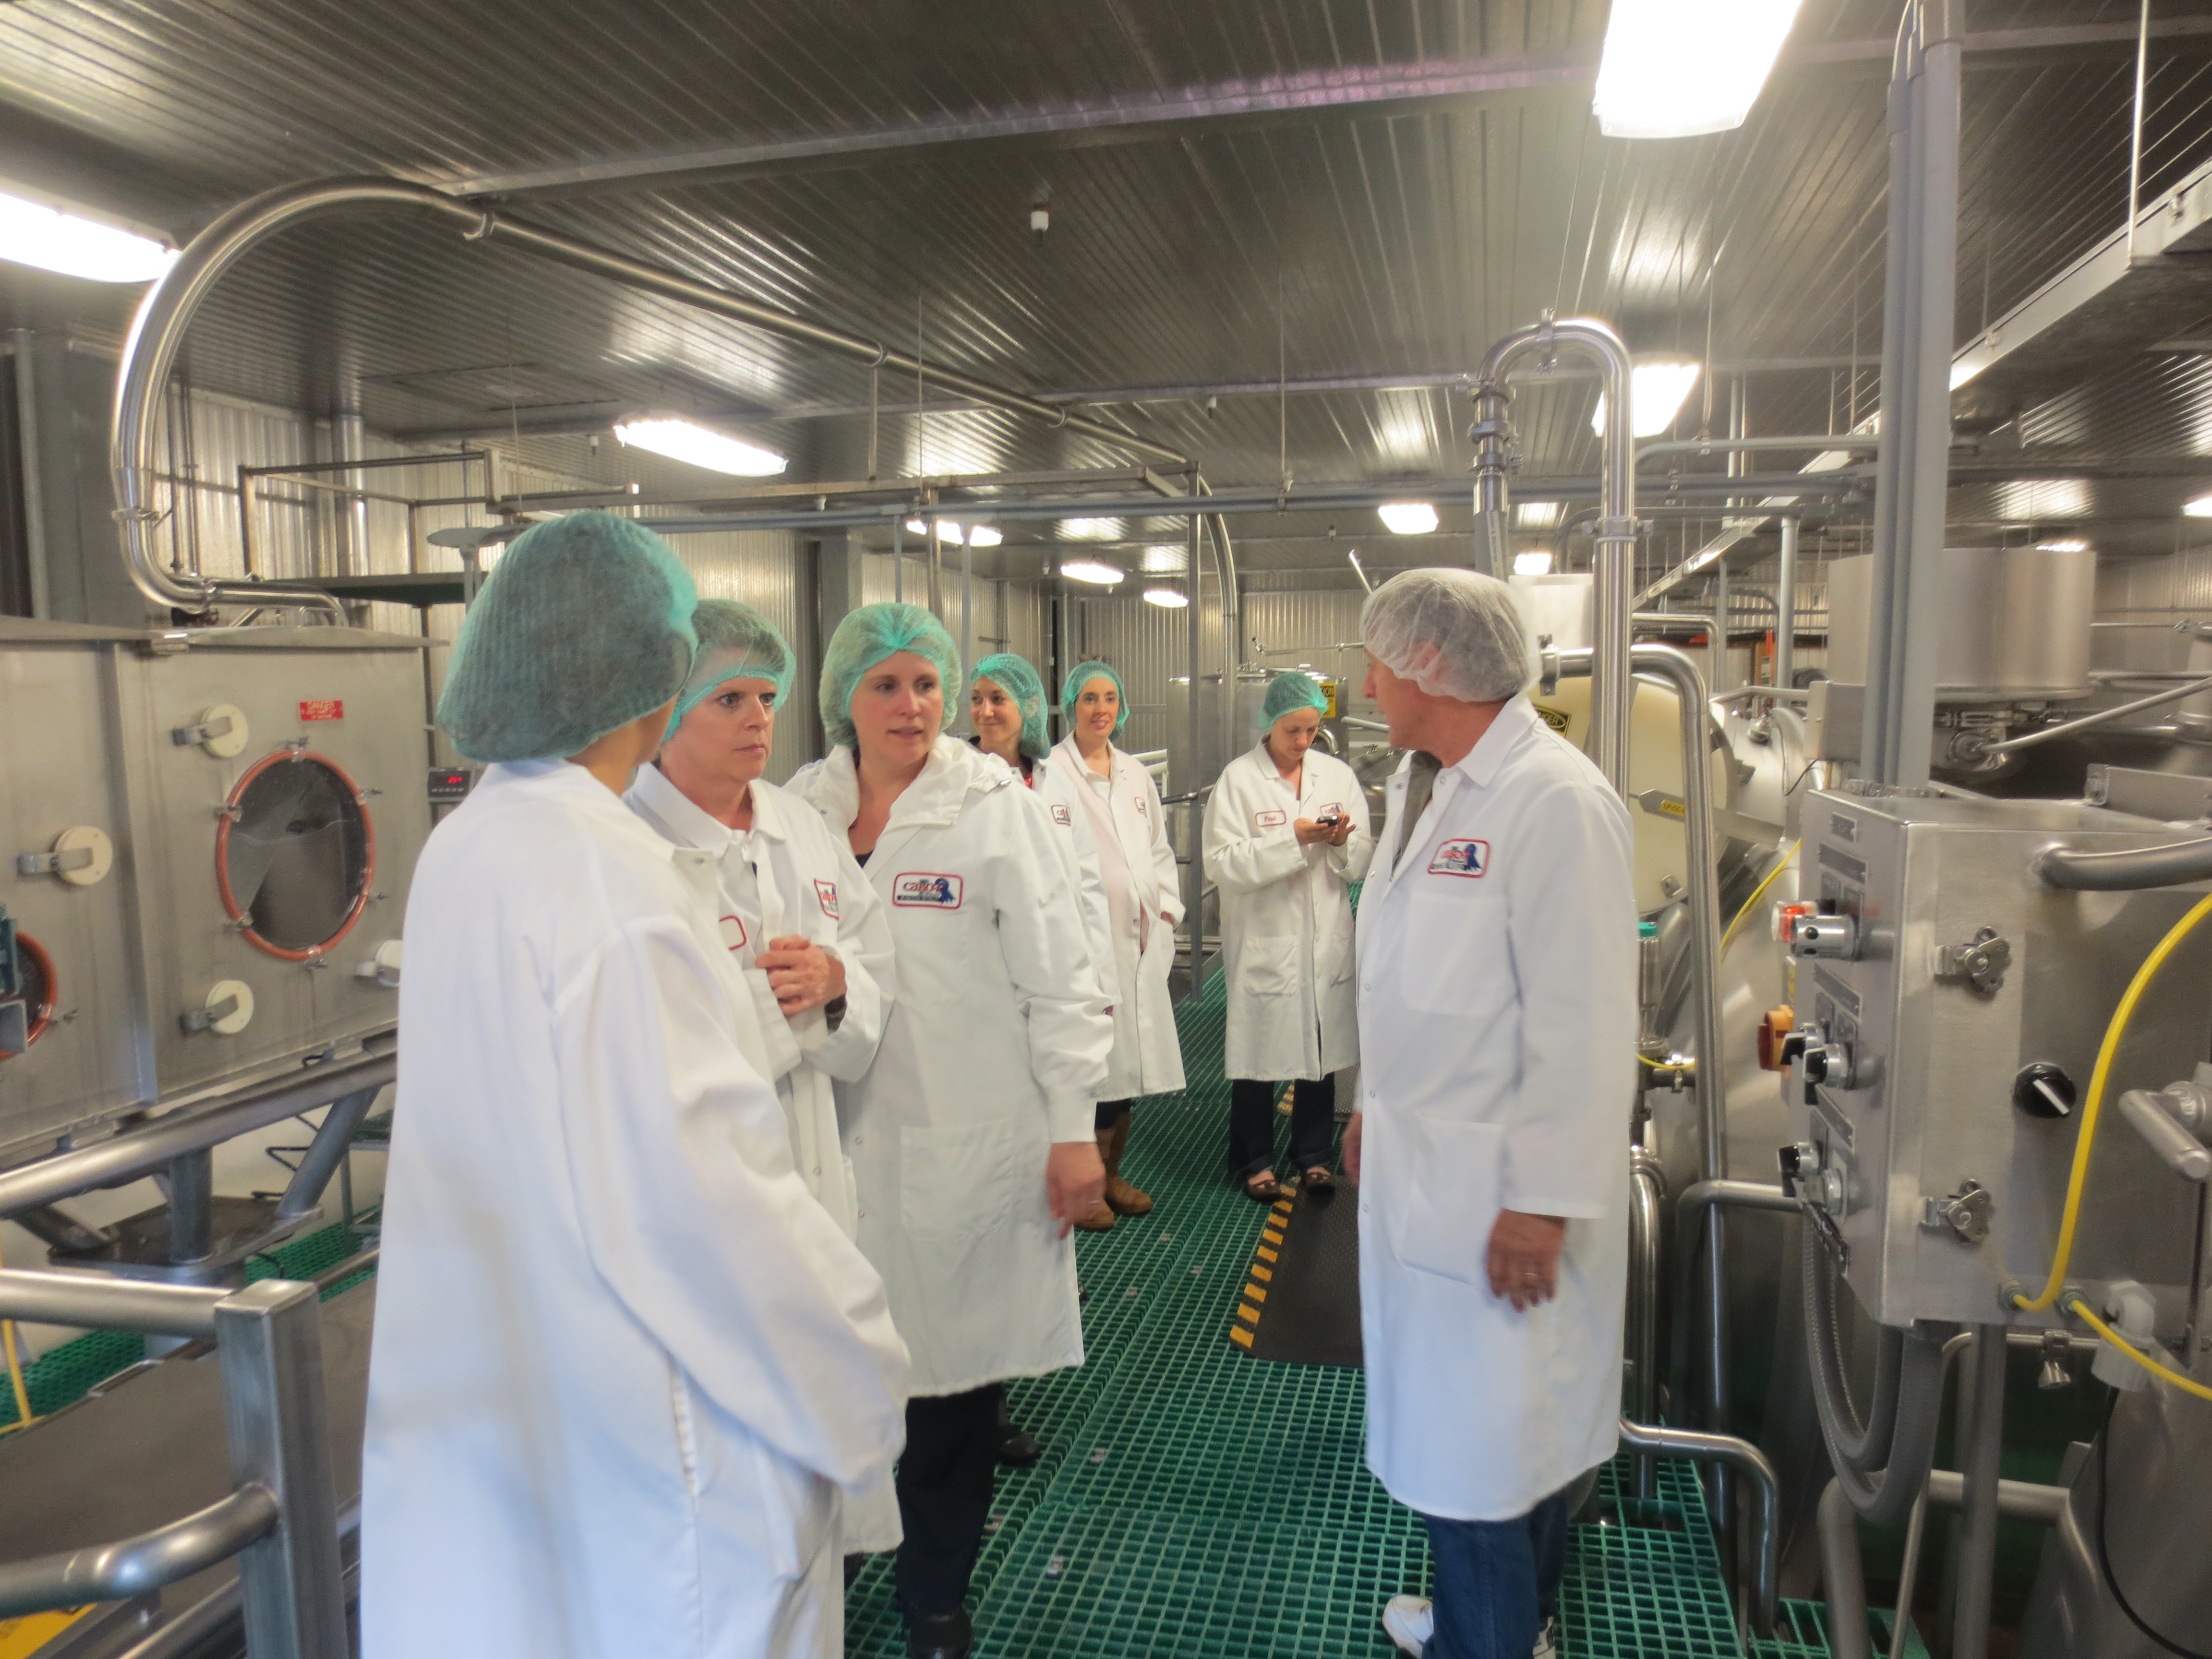 Getting a behind-the-scenes look at the production of cottage cheese and sour cream